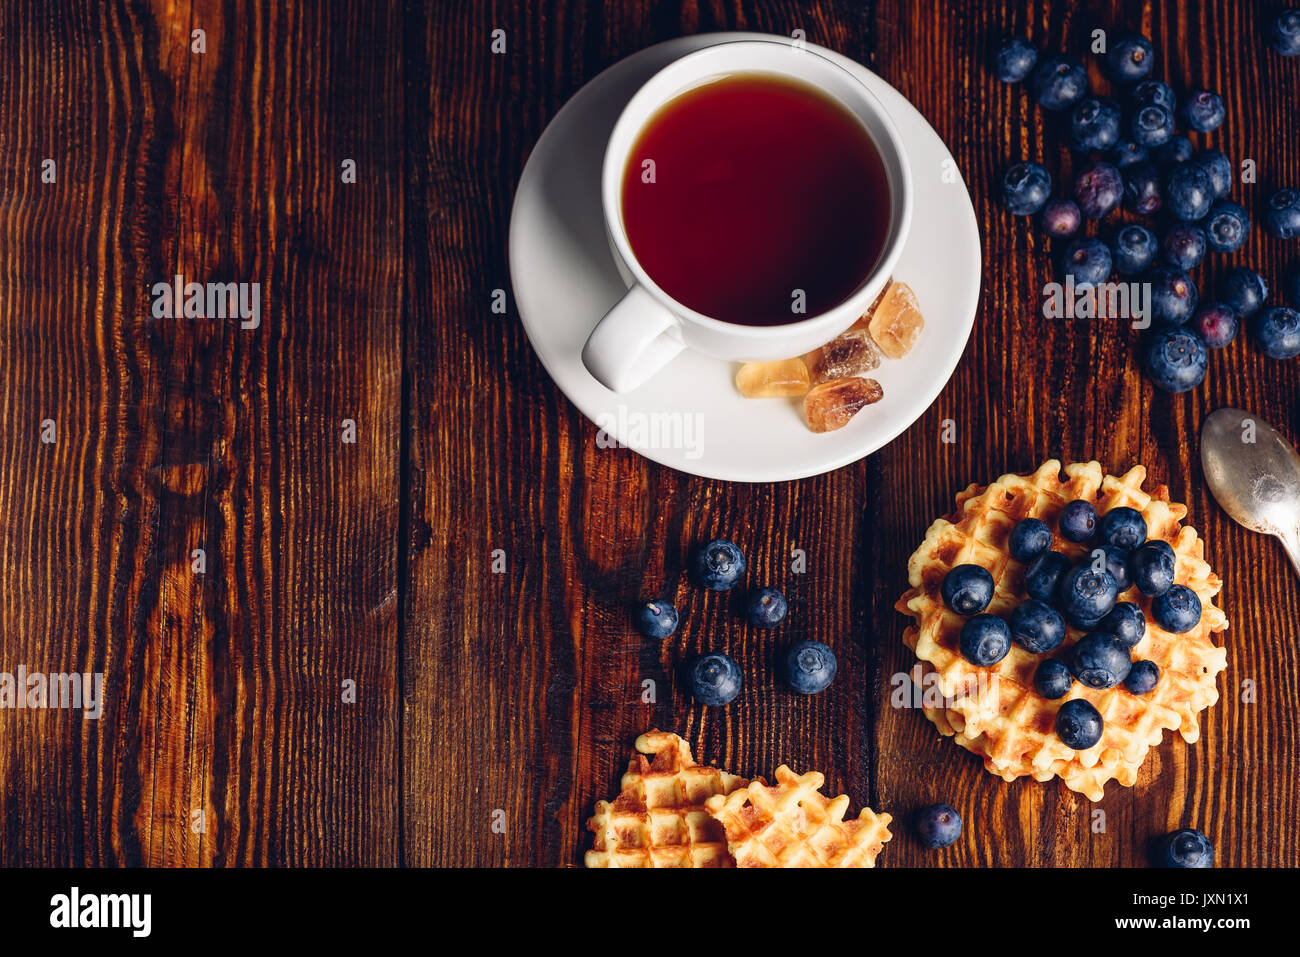 White Cup of Tea with Blueberry and Homemade Waffles on Wooden Background. Copy Space on the Left. - Stock Image